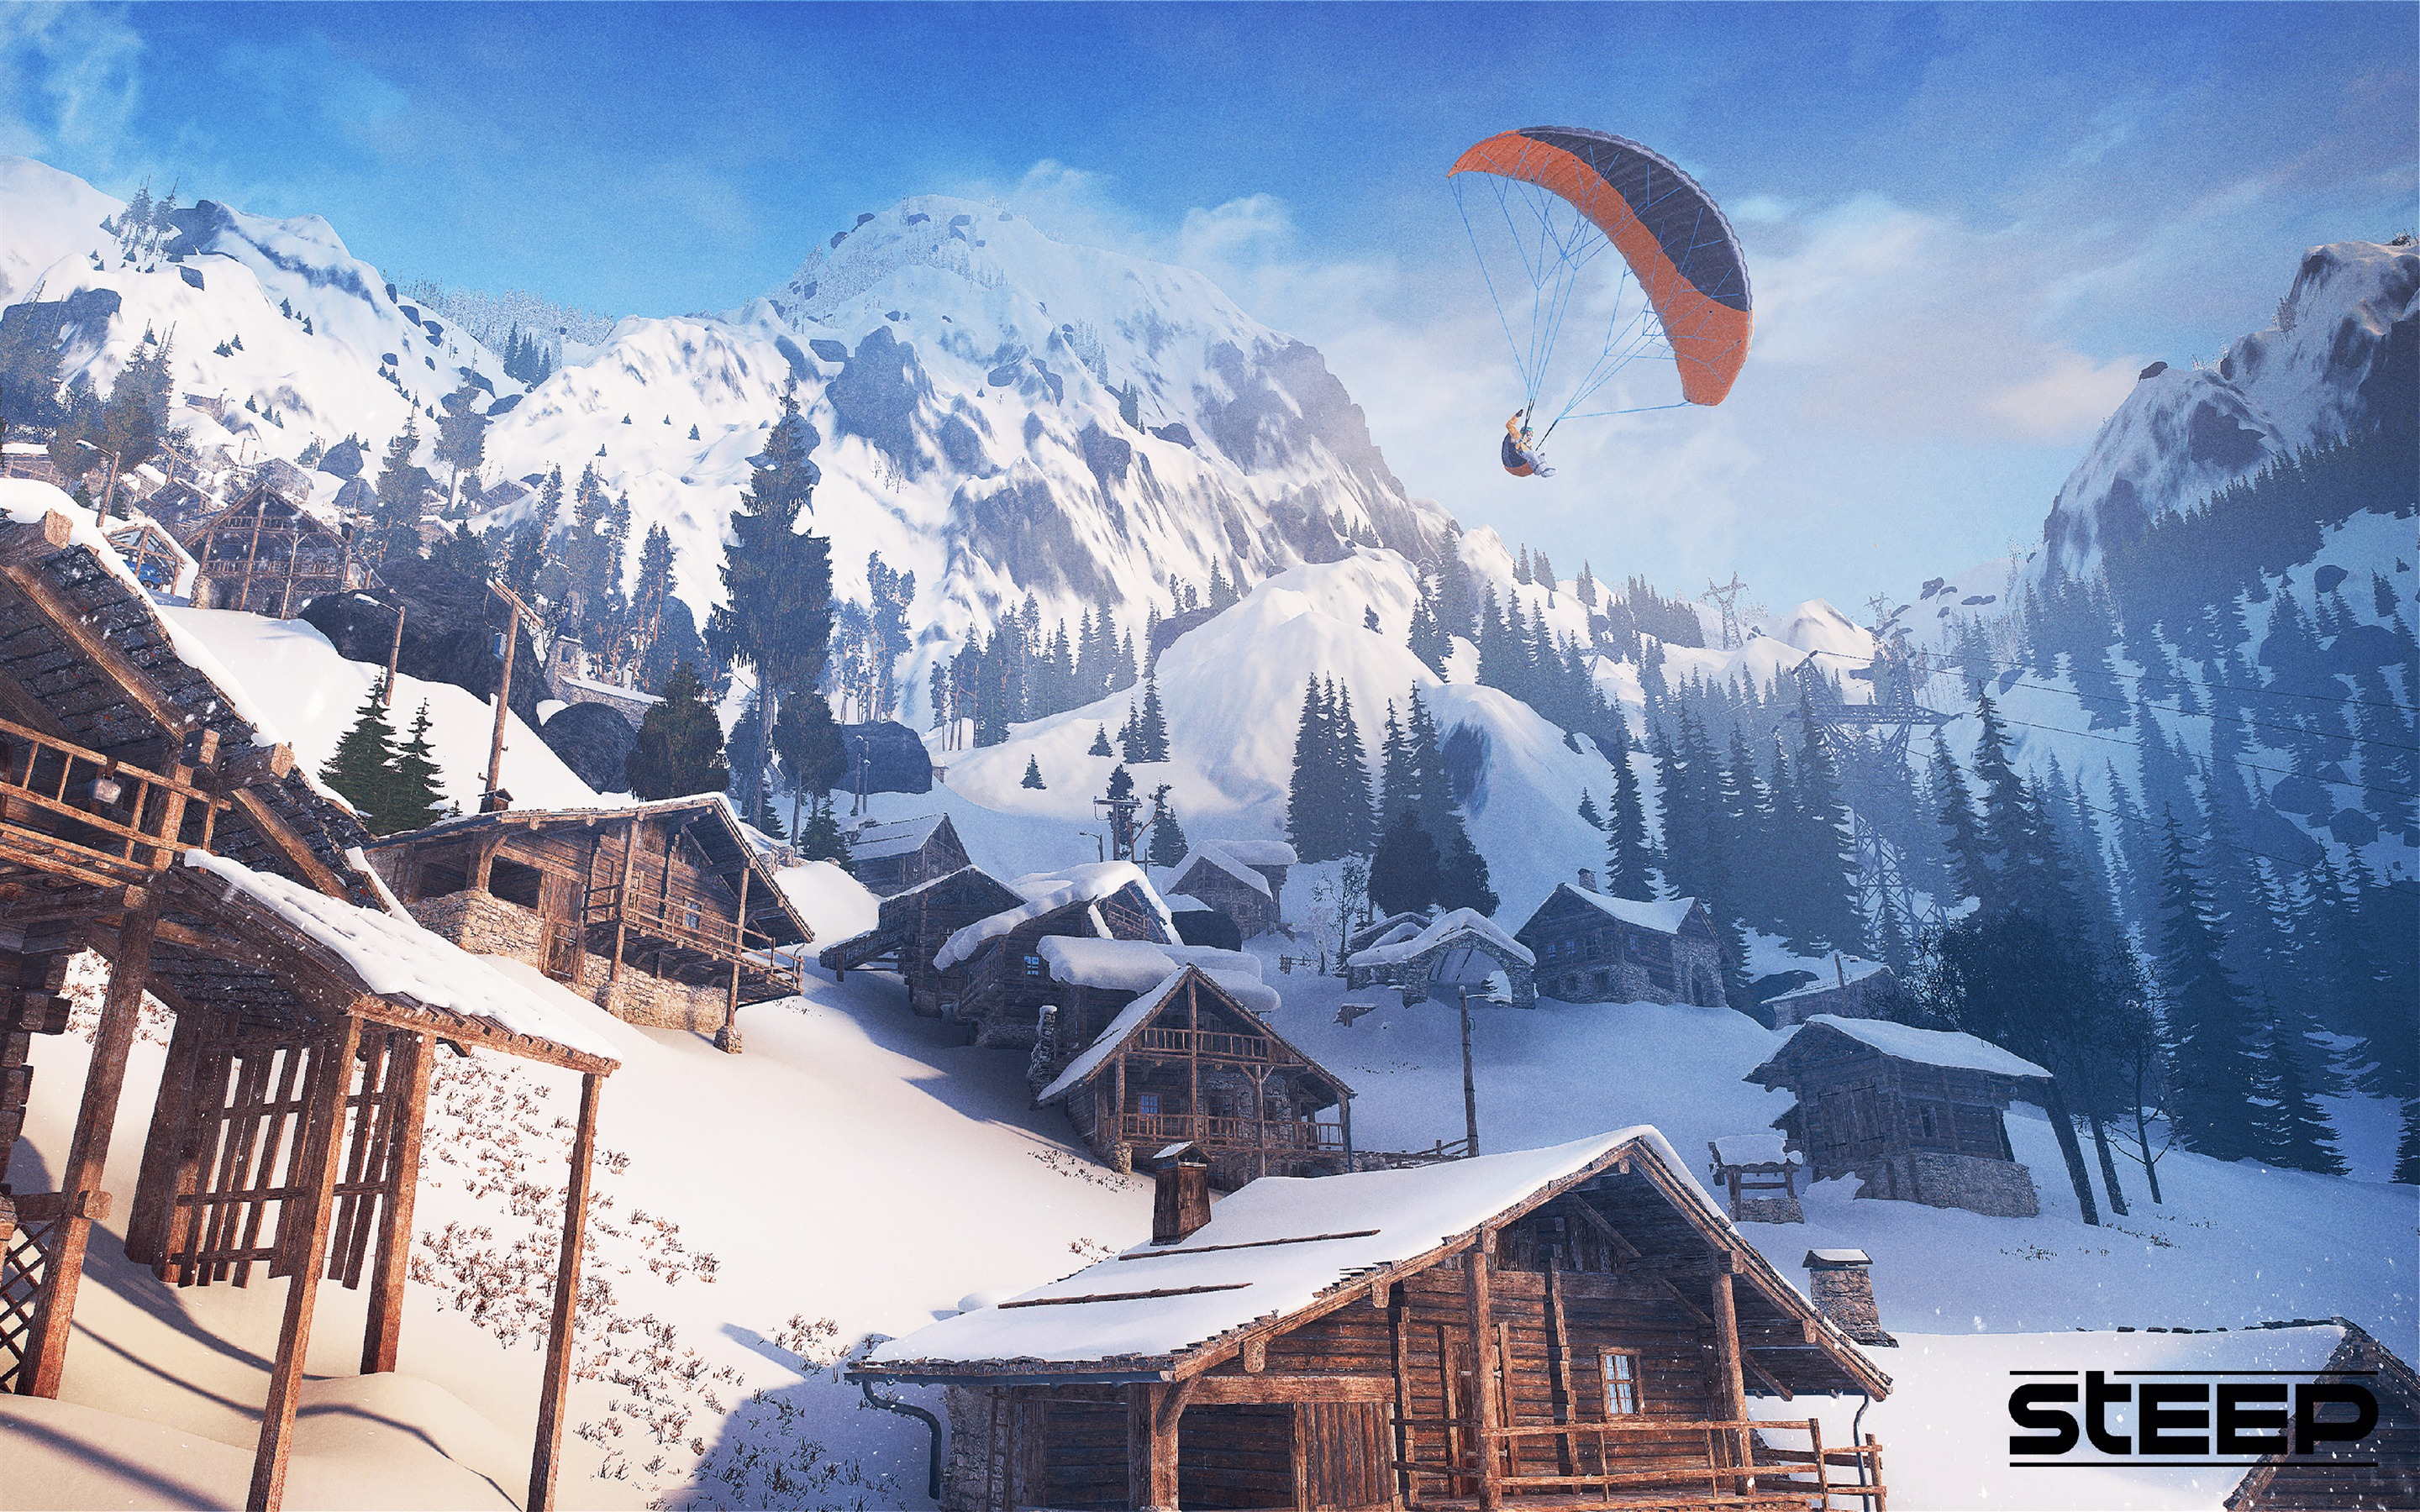 Steep Game 4K Ultra HD - 2880x1800 wallpaper download